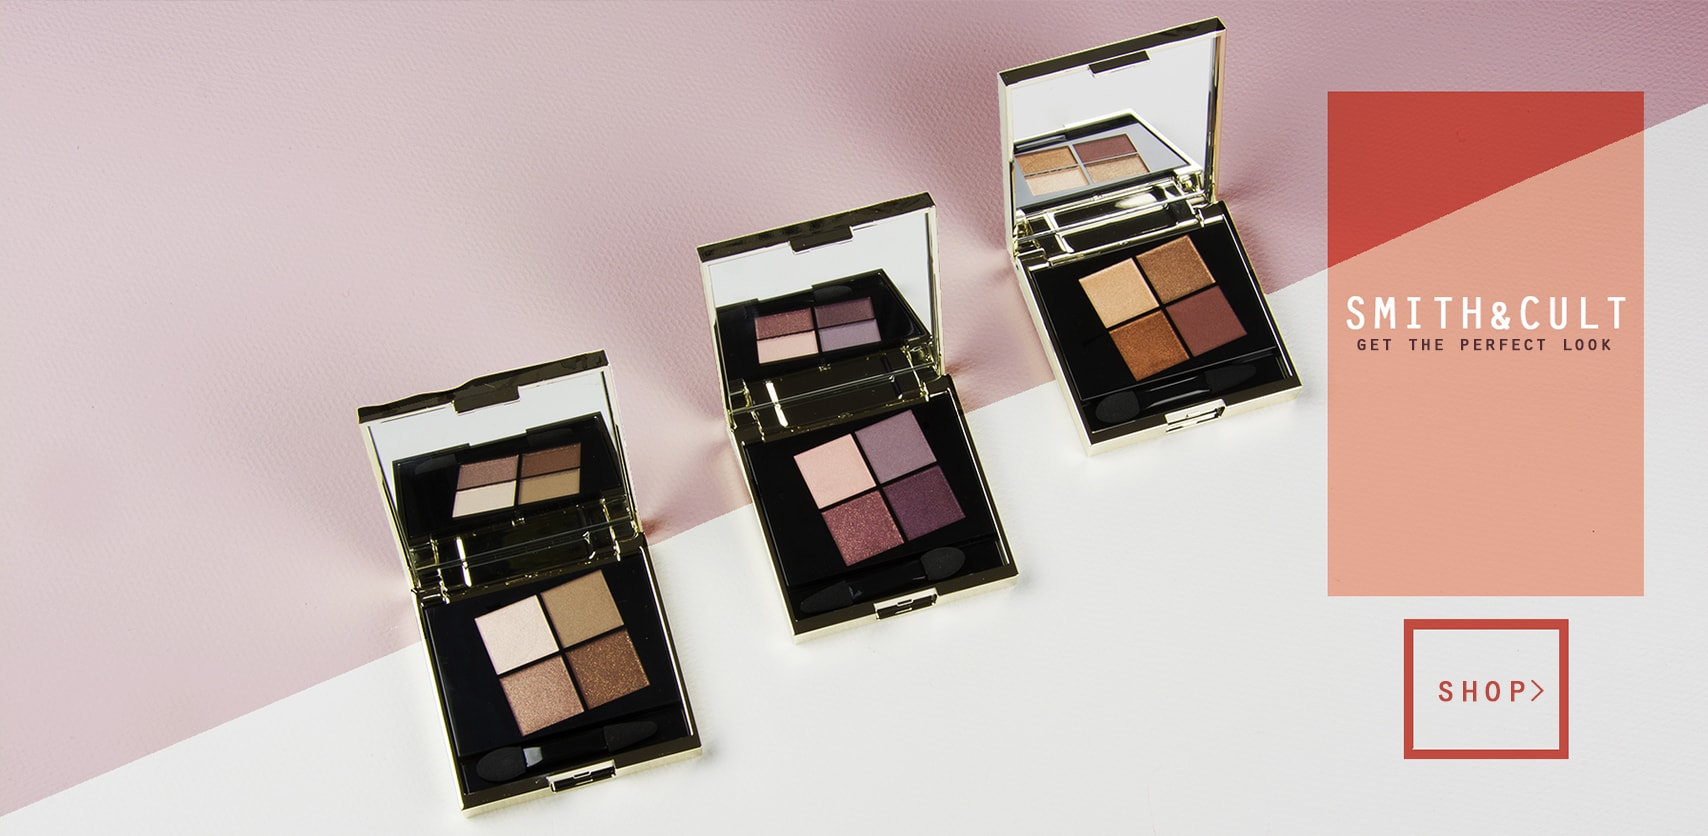 Smith and Cult Make-Up Products